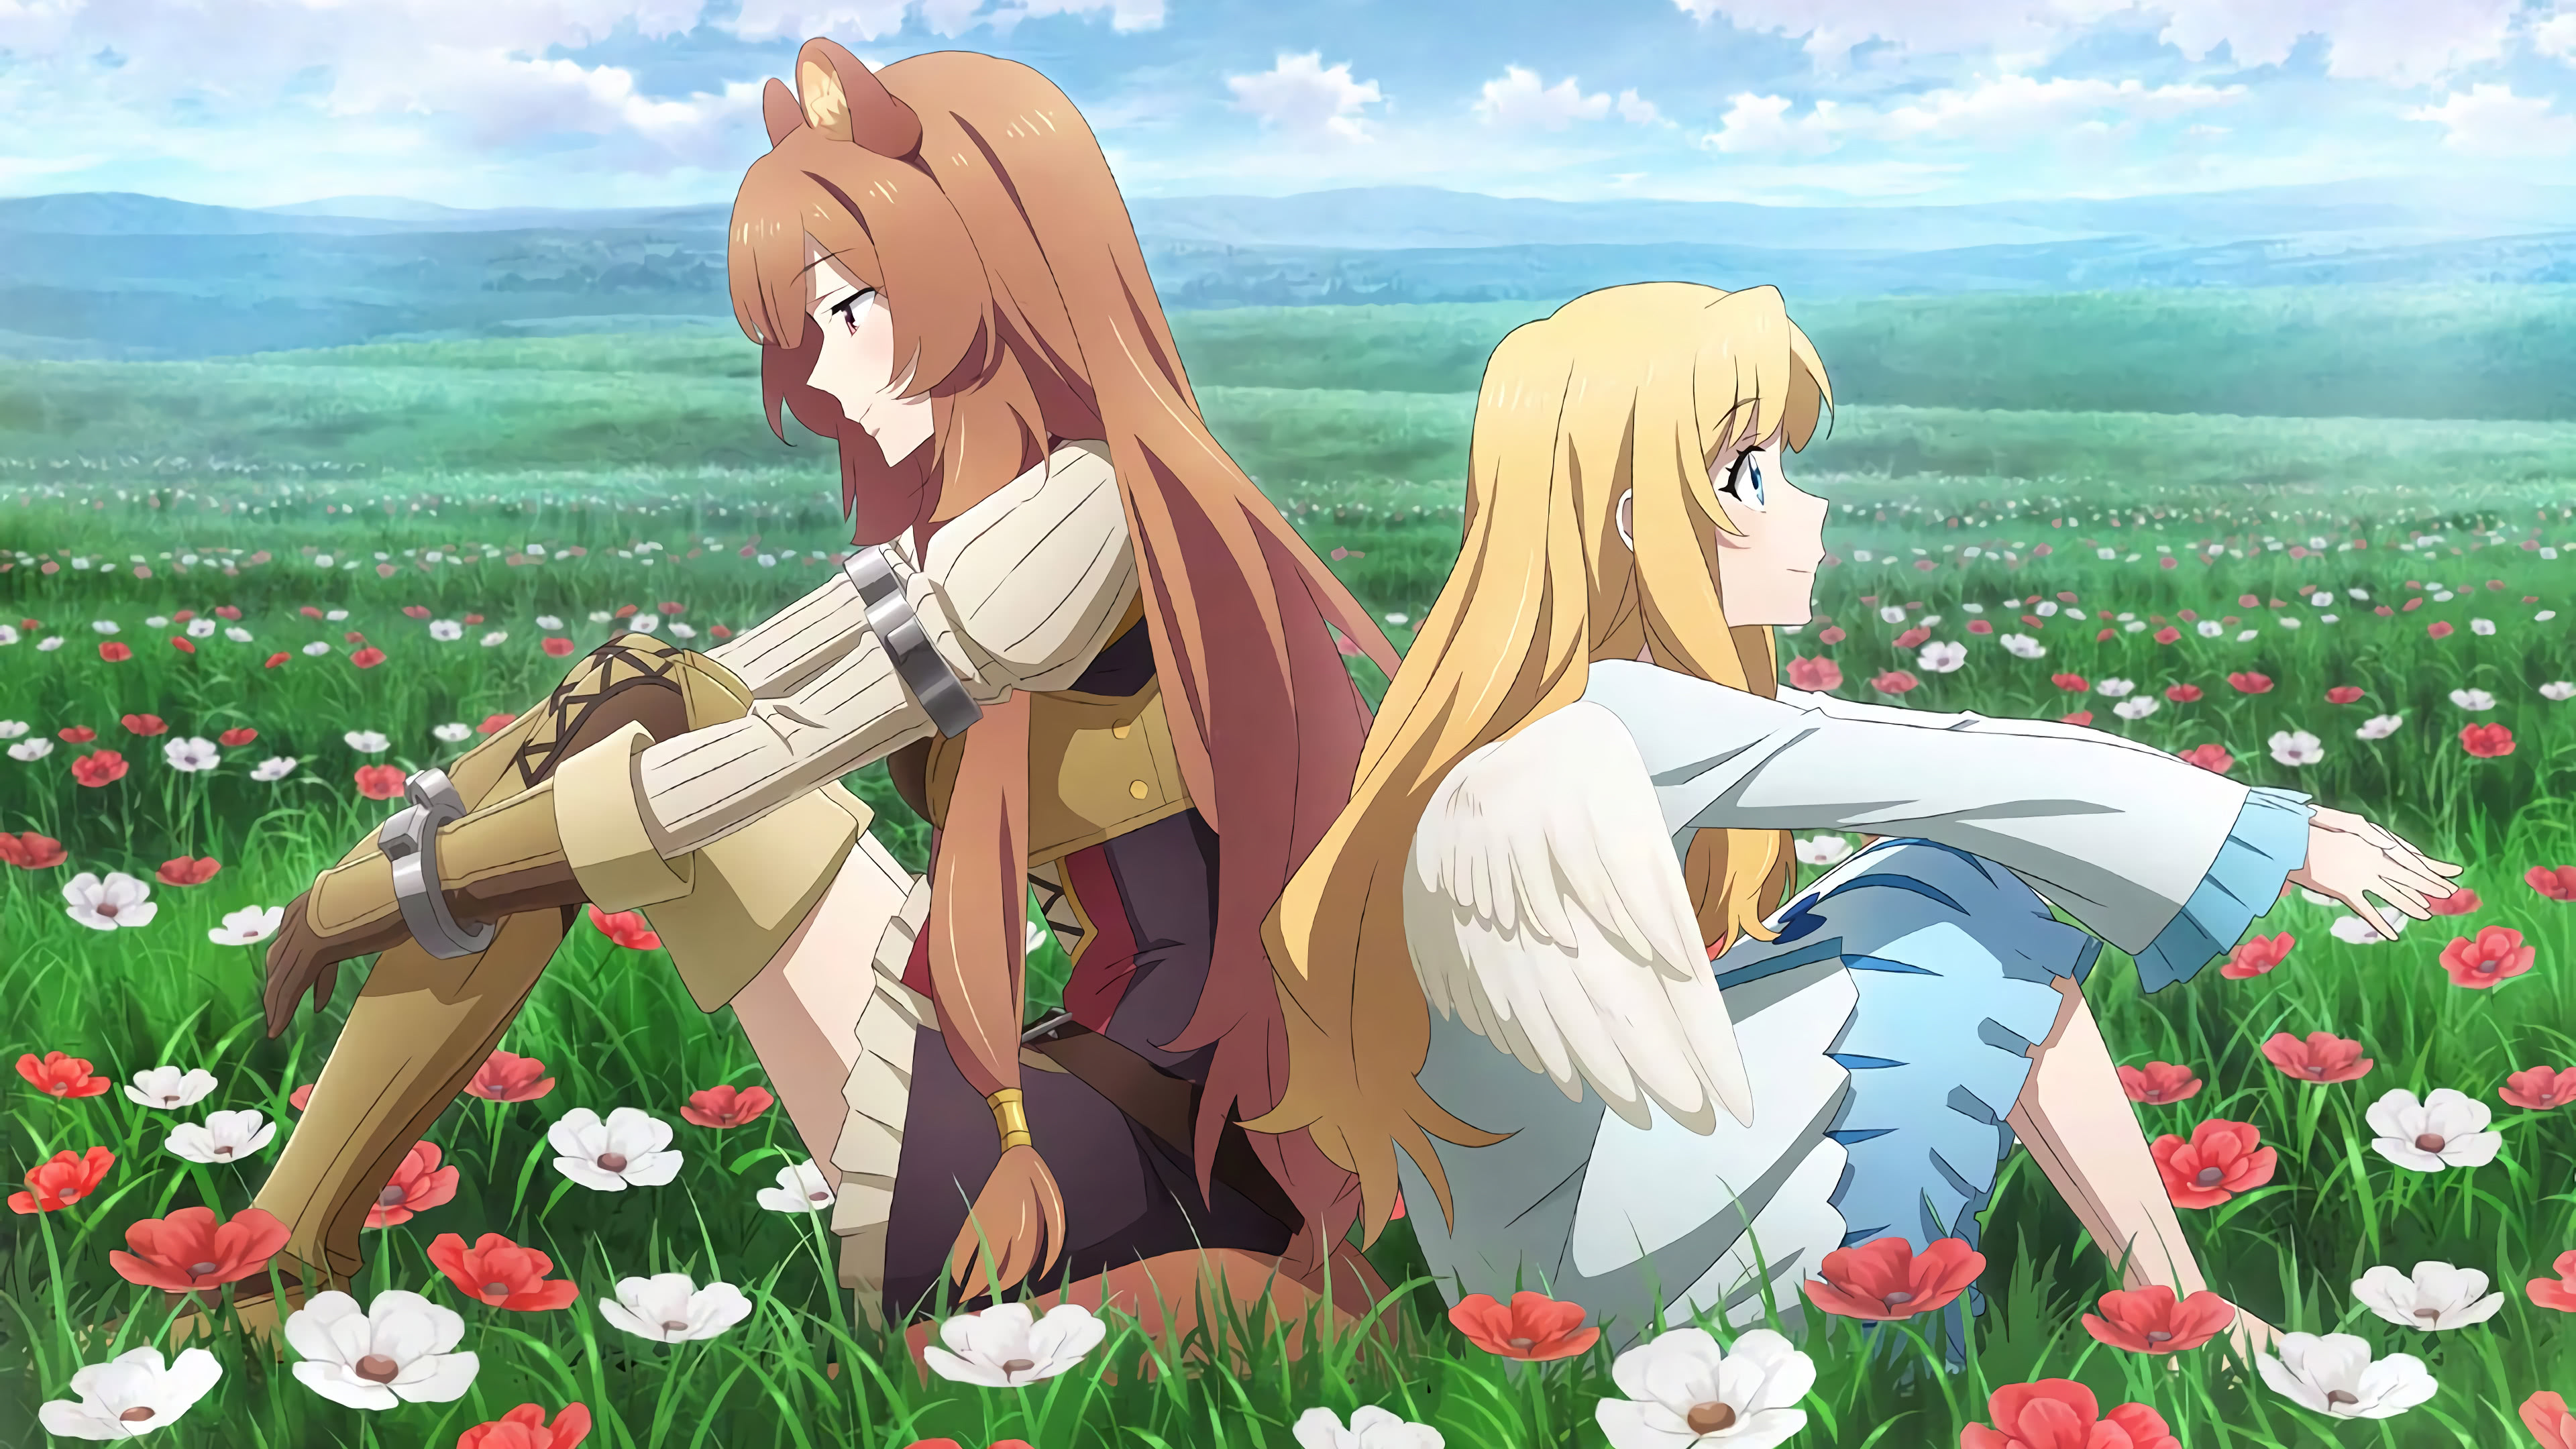 The Rising Of The Shield Hero Raphtalia Filo Uhd 4k Wallpaper Pixelz